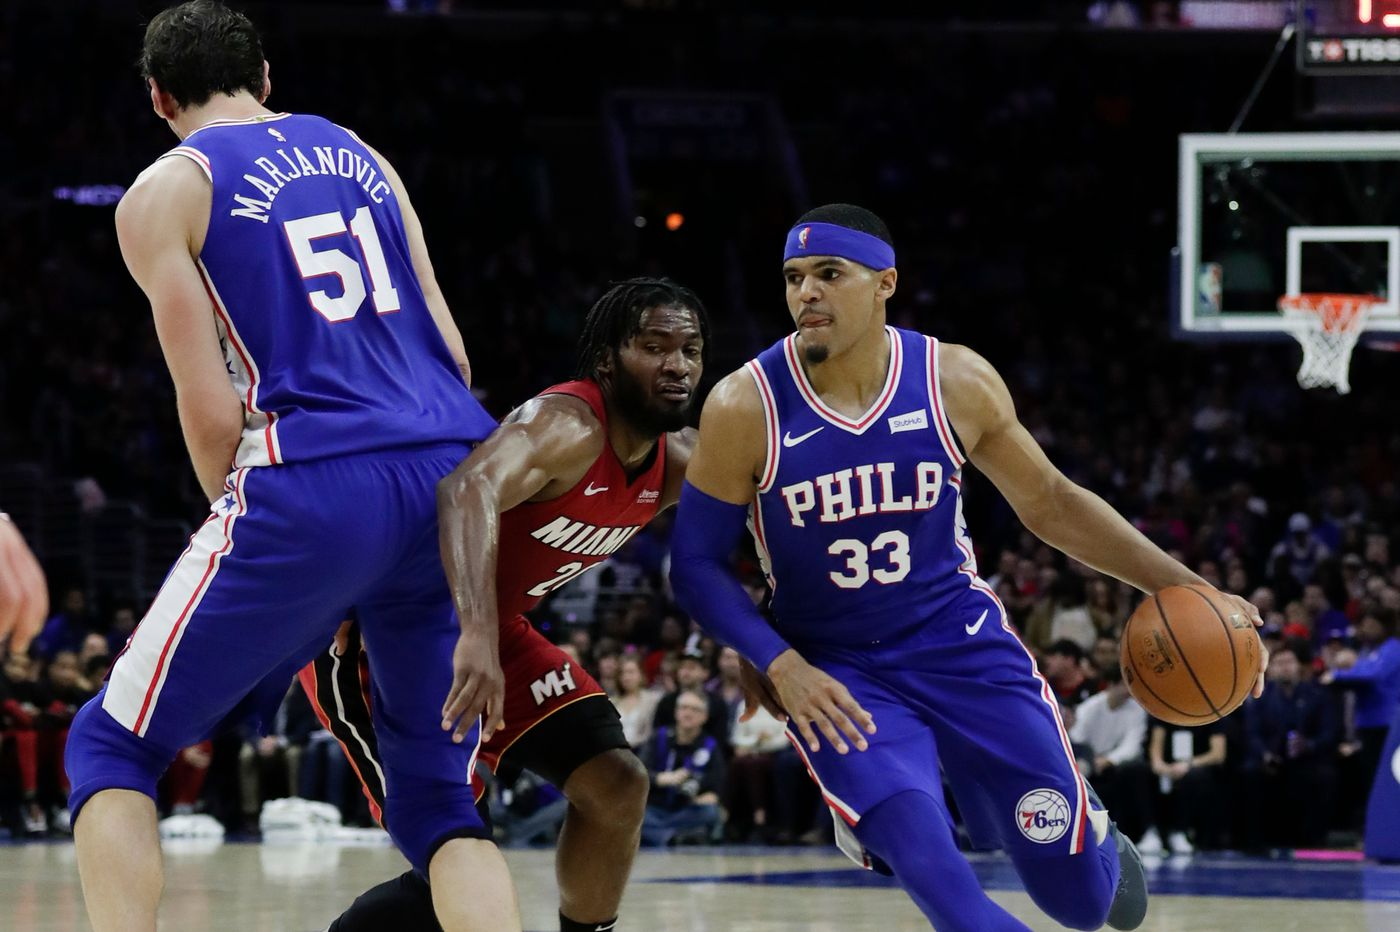 Sixers-Heat observations: Tobias Harris' versatility, Ben Simmons' dwindling assists numbers